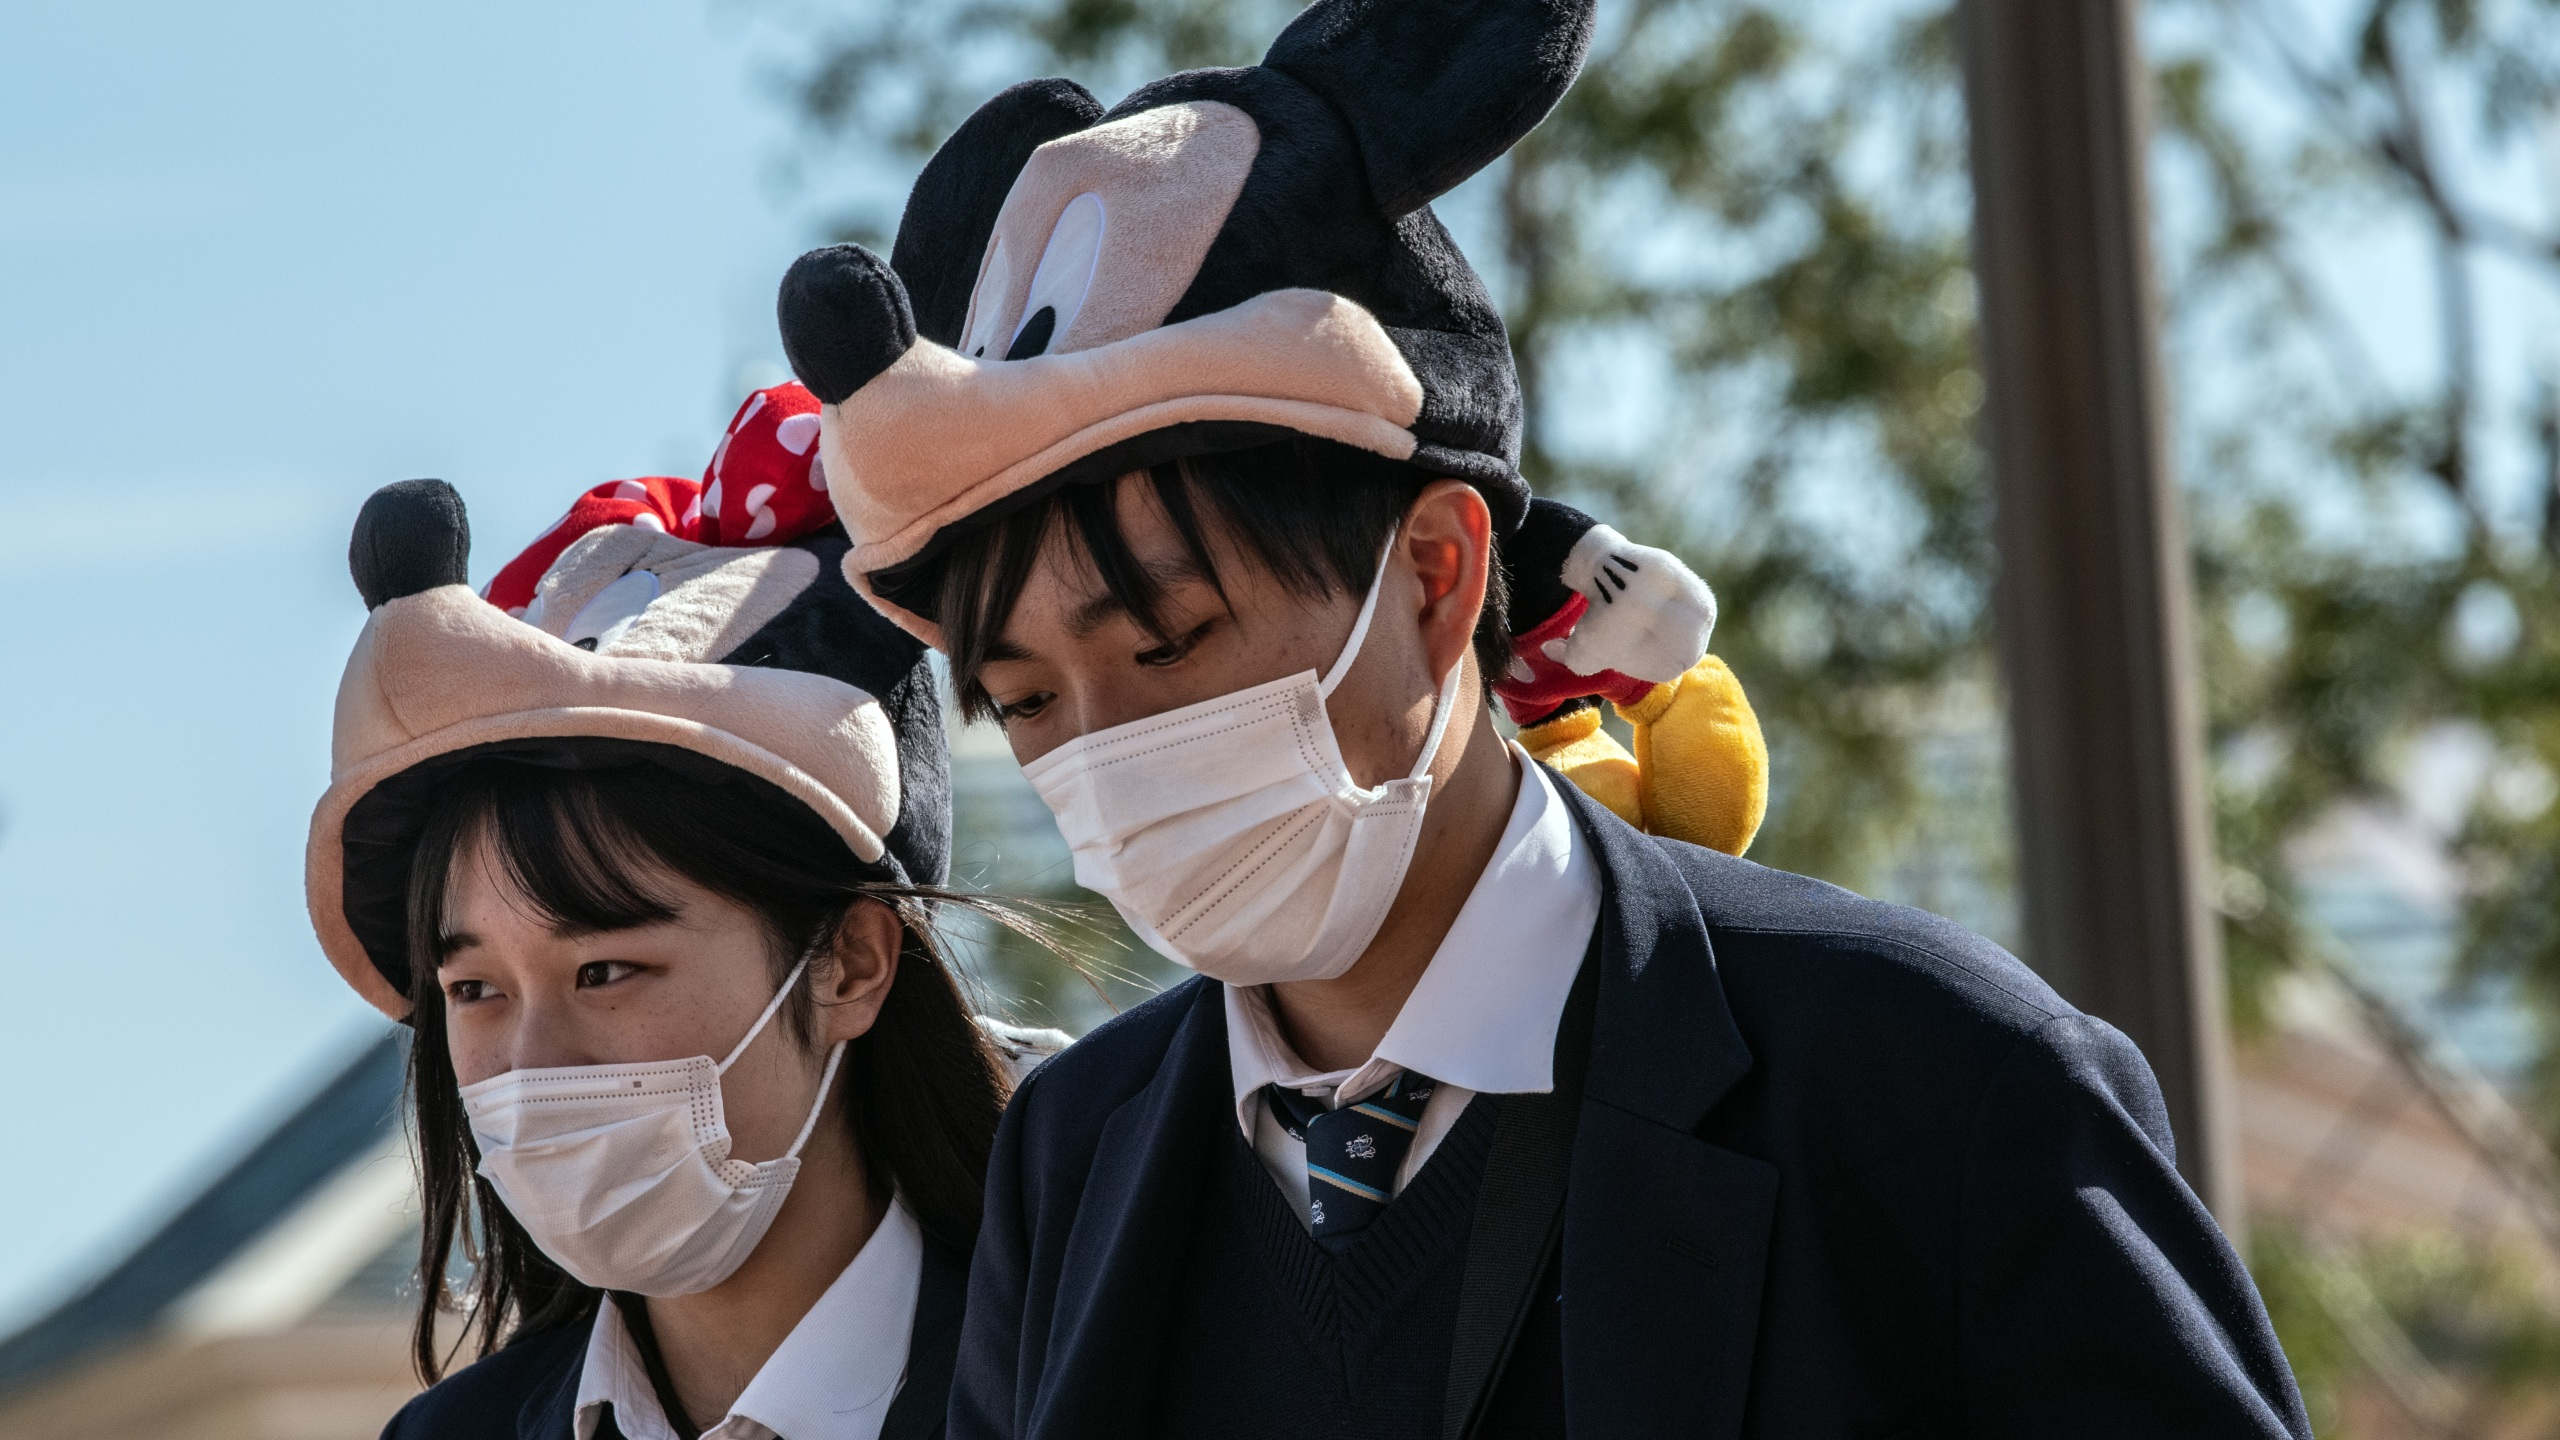 Students wearing Disney character hats and face masks leave Tokyo Disneyland on the day it announced it will close until March 15th because of concerns over the Covid-19 virus, on Feb. 28, 2020. (Carl Court/Getty Images)